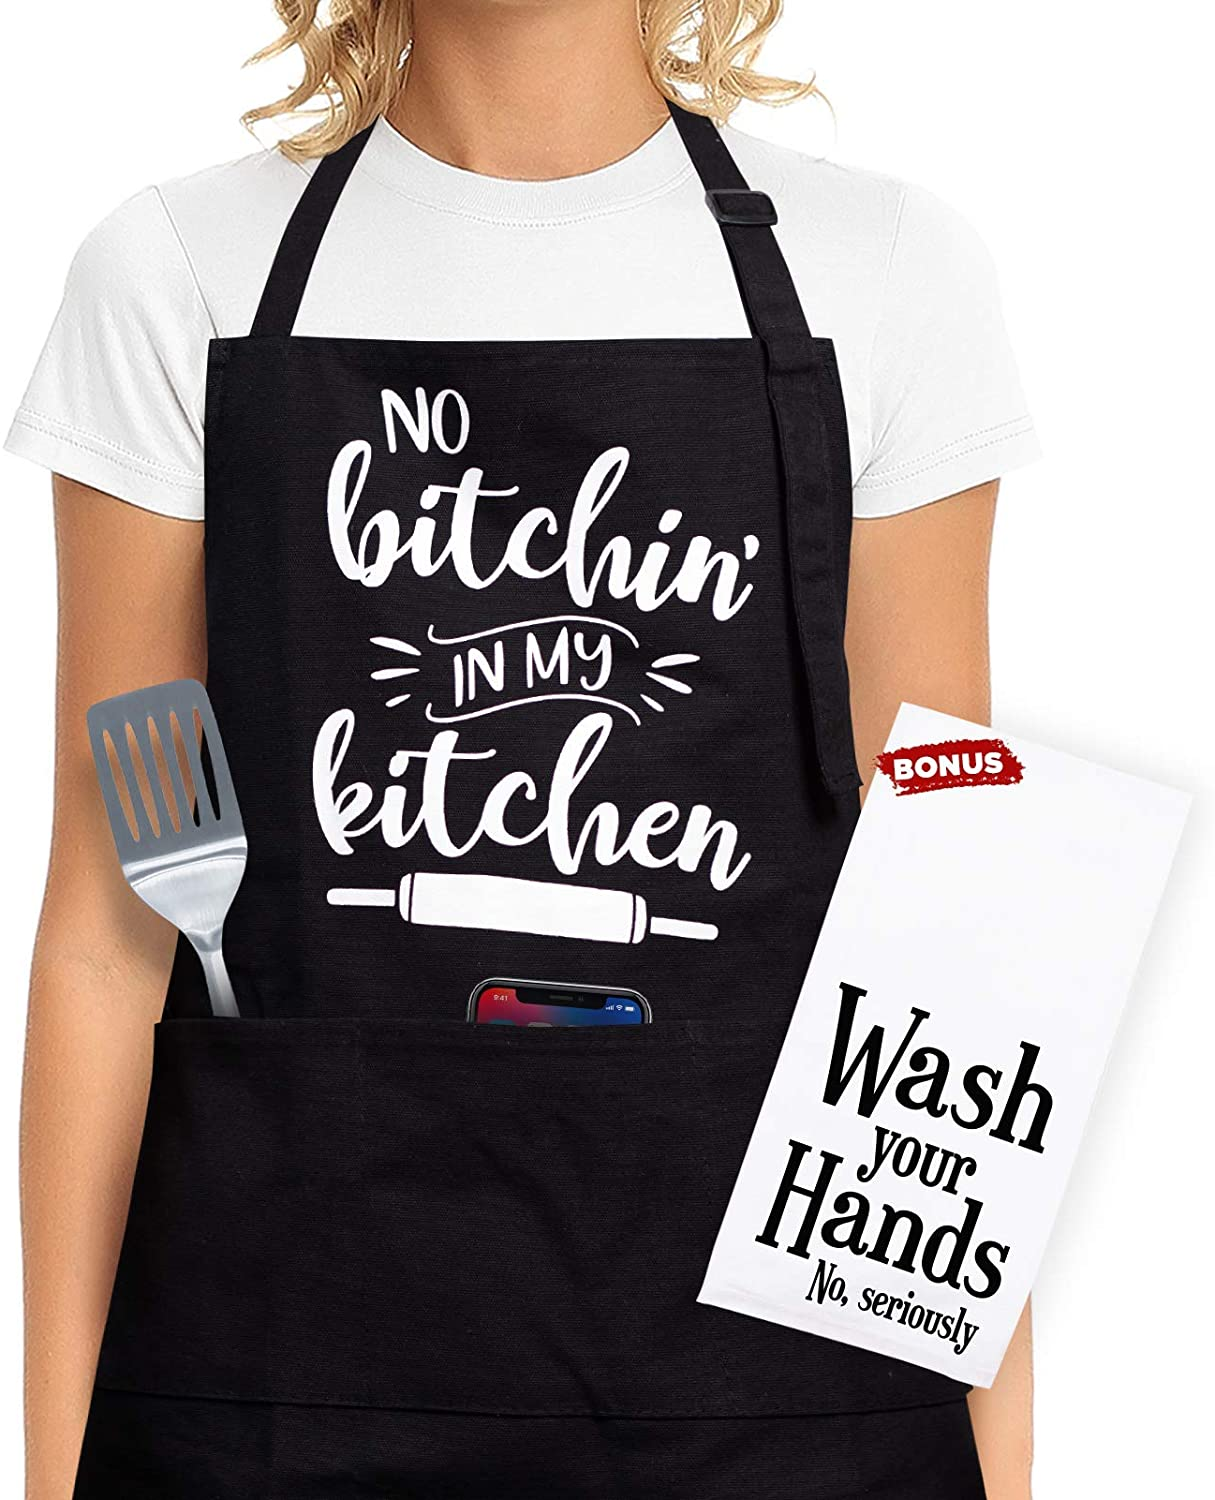 Funny Cooking Apron For Women - Funny Cooking Gifts For Women Who Love To Cook, Gift Aprons For Women With Pockets - Funny Kitchen Aprons For Women, Funny Gifts For Women Birthday, Funny Gifts For Mom